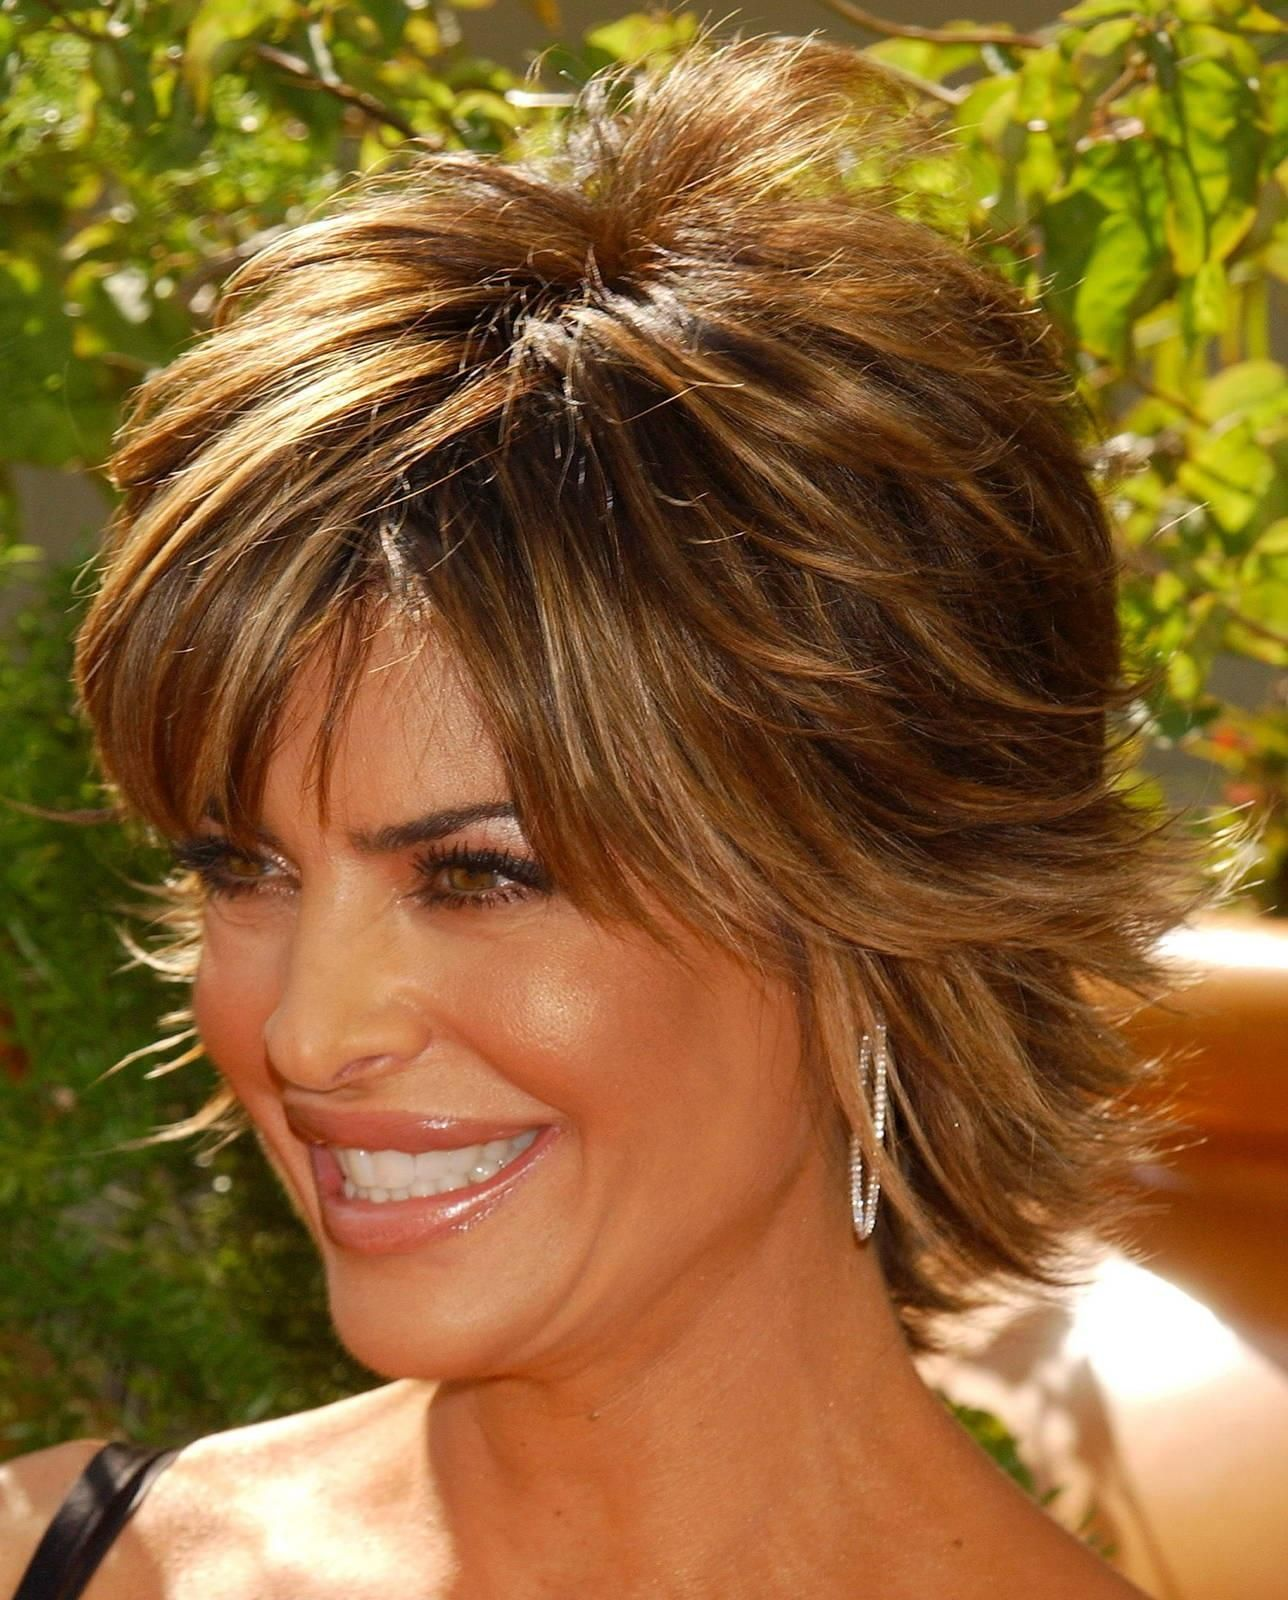 Pin By Pam Waltrip On Hair Short Hair Styles Lisa Rinna Haircut Hair Styles